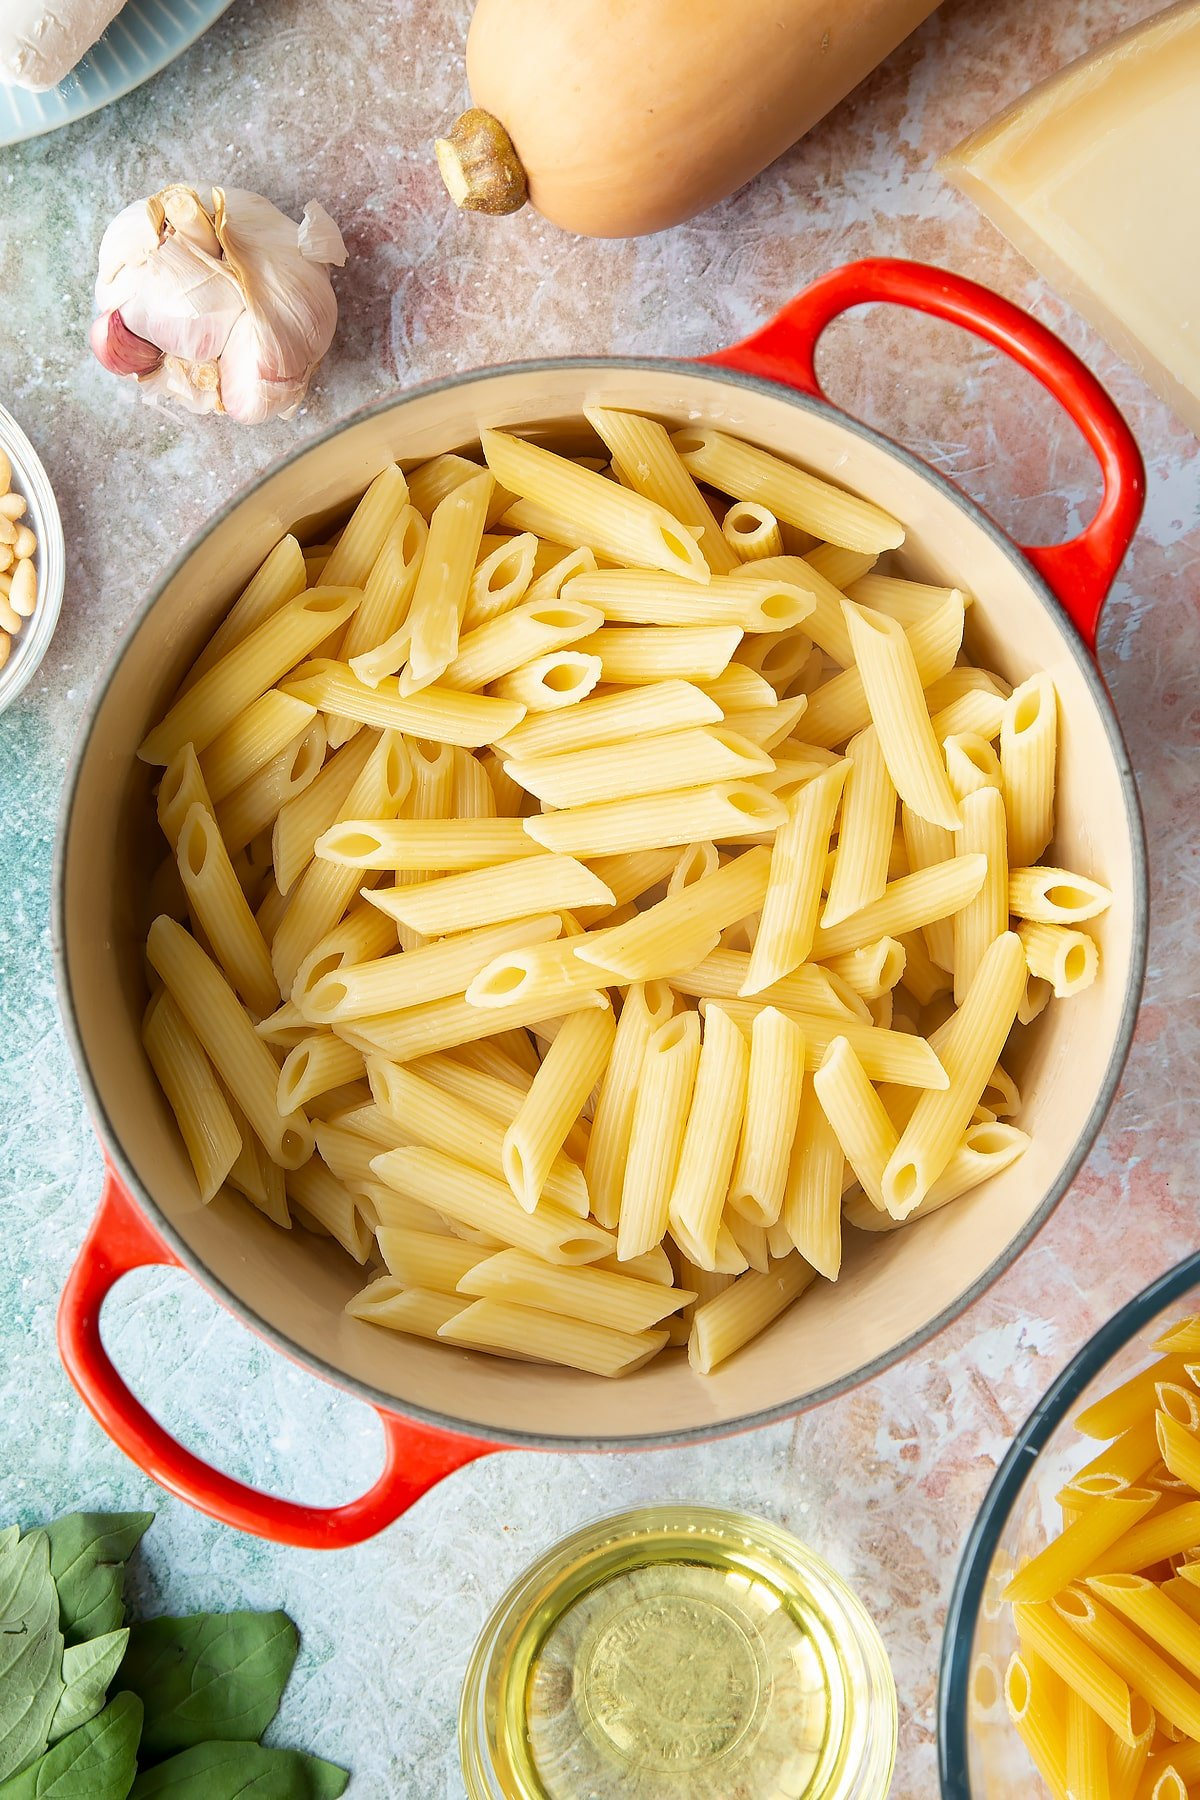 Cooked and drained penne pasta in a pan. Ingredients to make penne with butternut squash and goat cheese surround the pan.